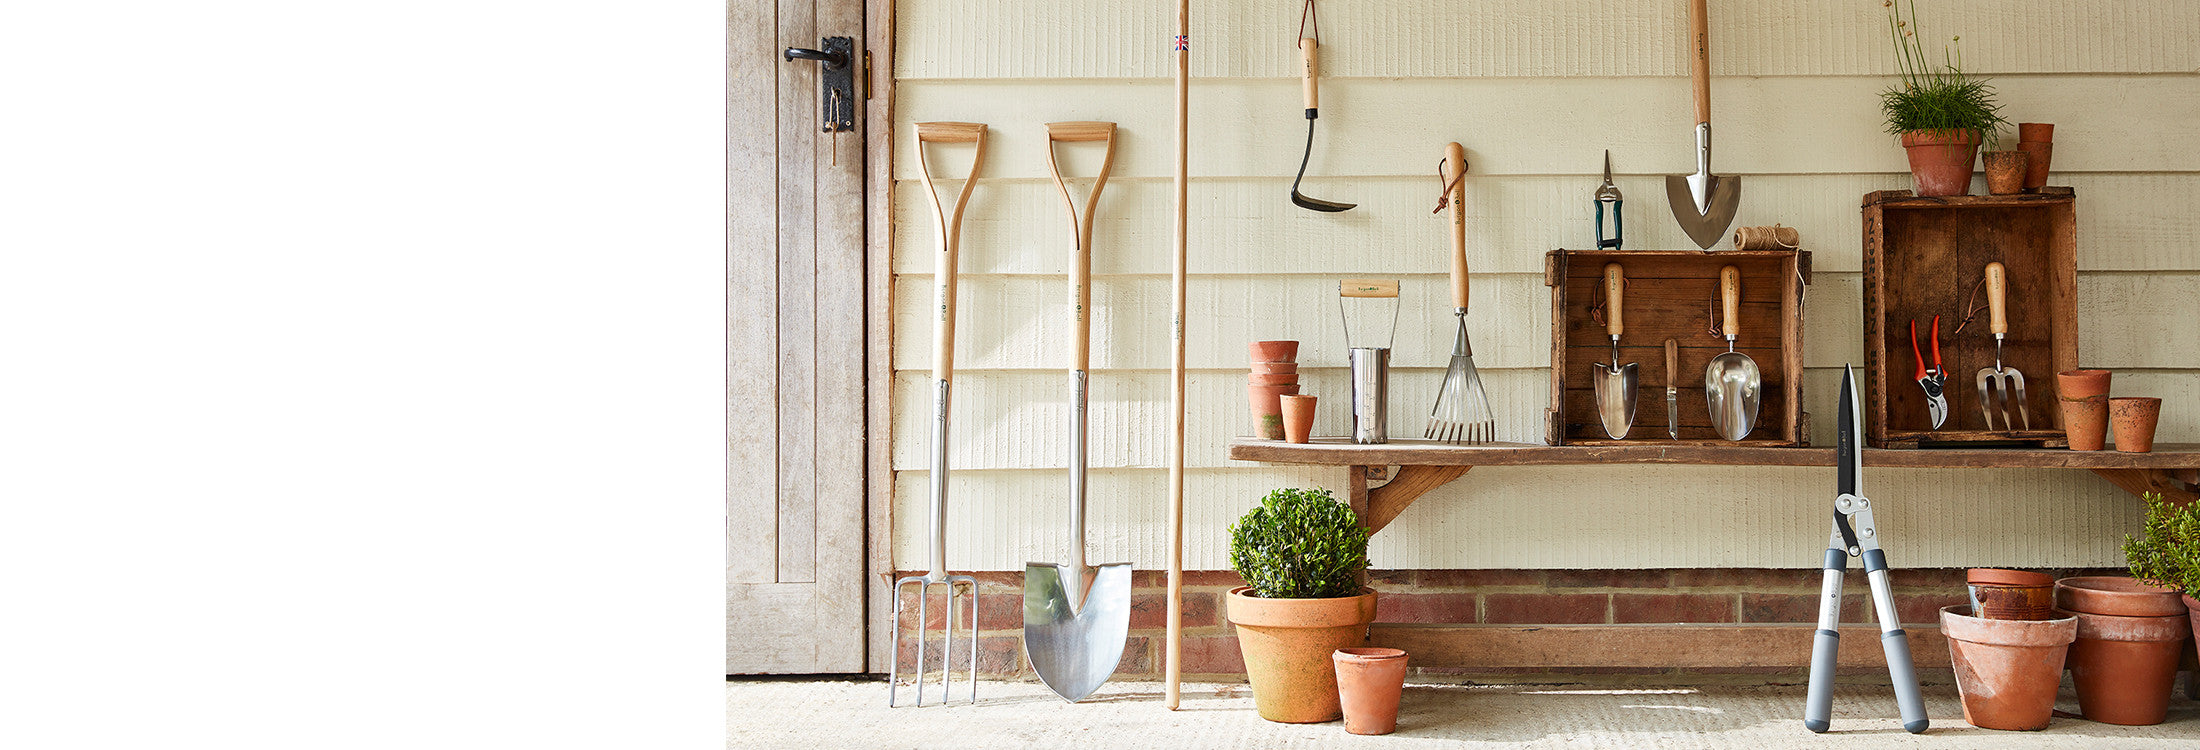 RHS Endorsed Garden Tools